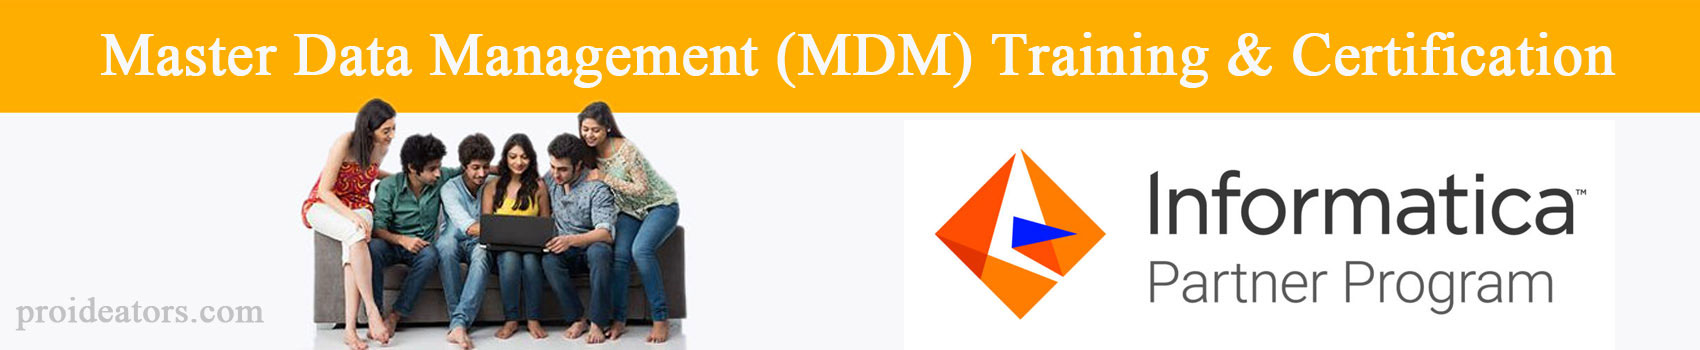 Informatica-Master-Data-Management-MDM-Training-Certification-Proideators